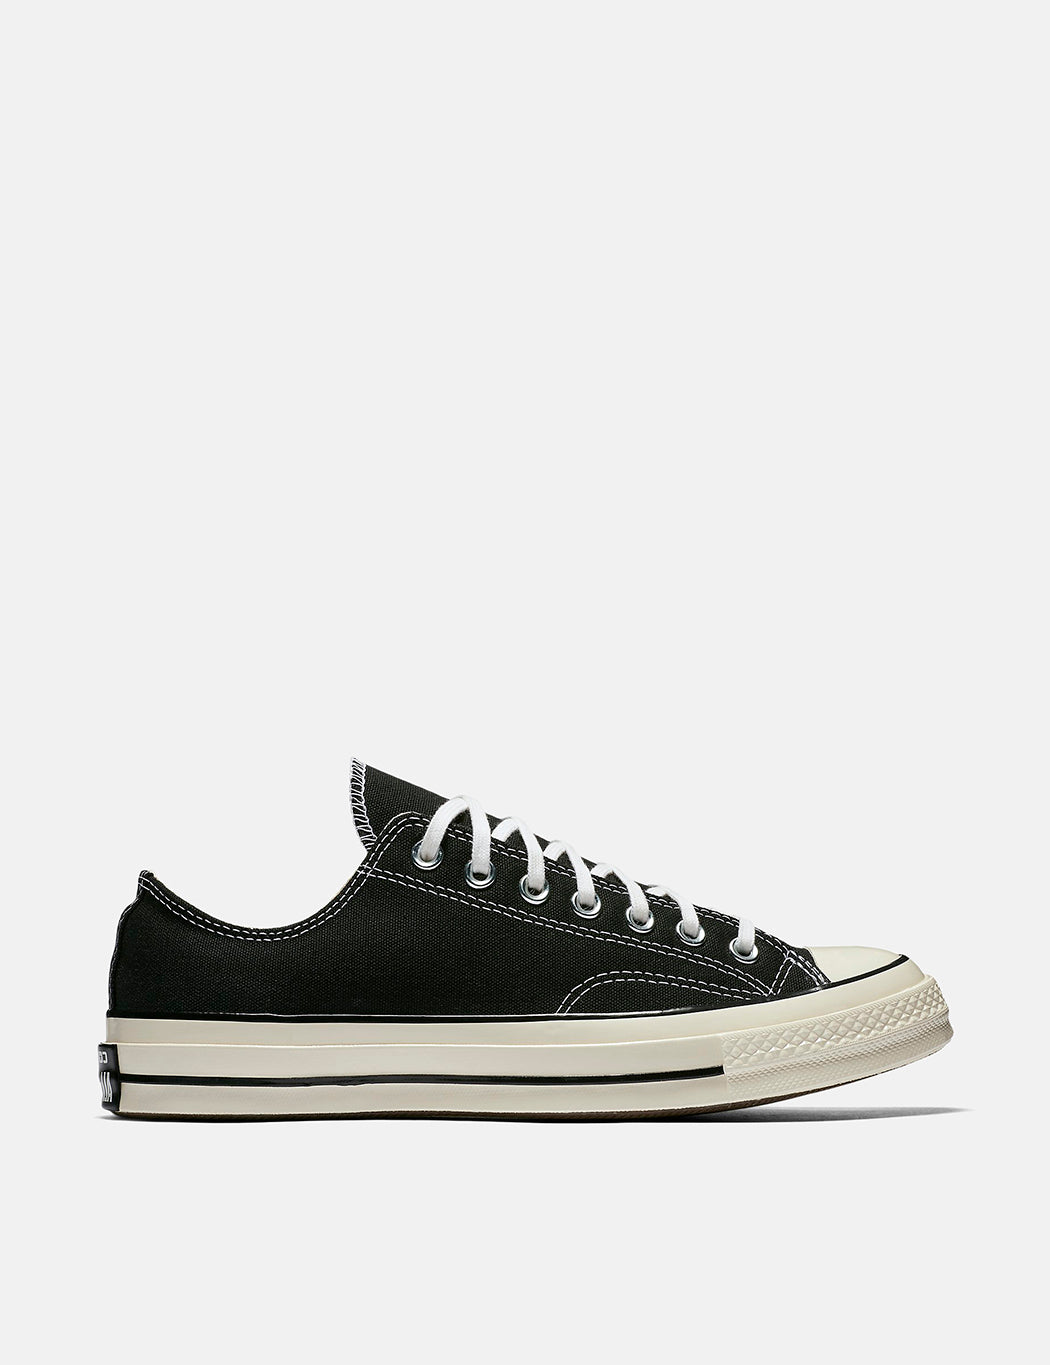 Converse 70 s Chuck Taylor Low 162058C (Canvas) in Black 566aa47cd